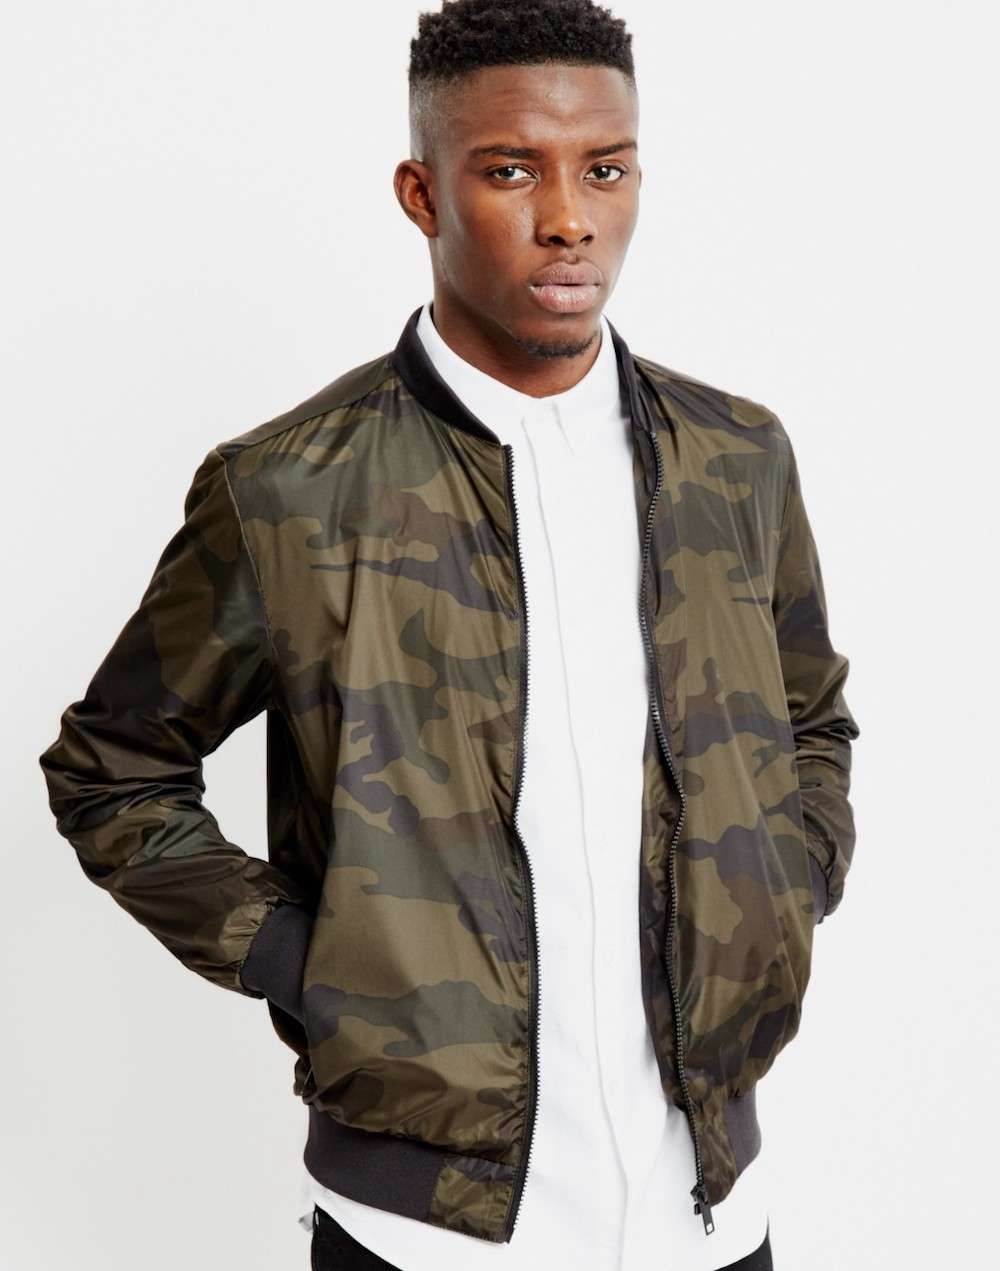 Theidleman Com Is Connected With Mailchimp Bomber Jacket Jackets Men Fashion Camo Bomber Jacket [ 1271 x 1000 Pixel ]